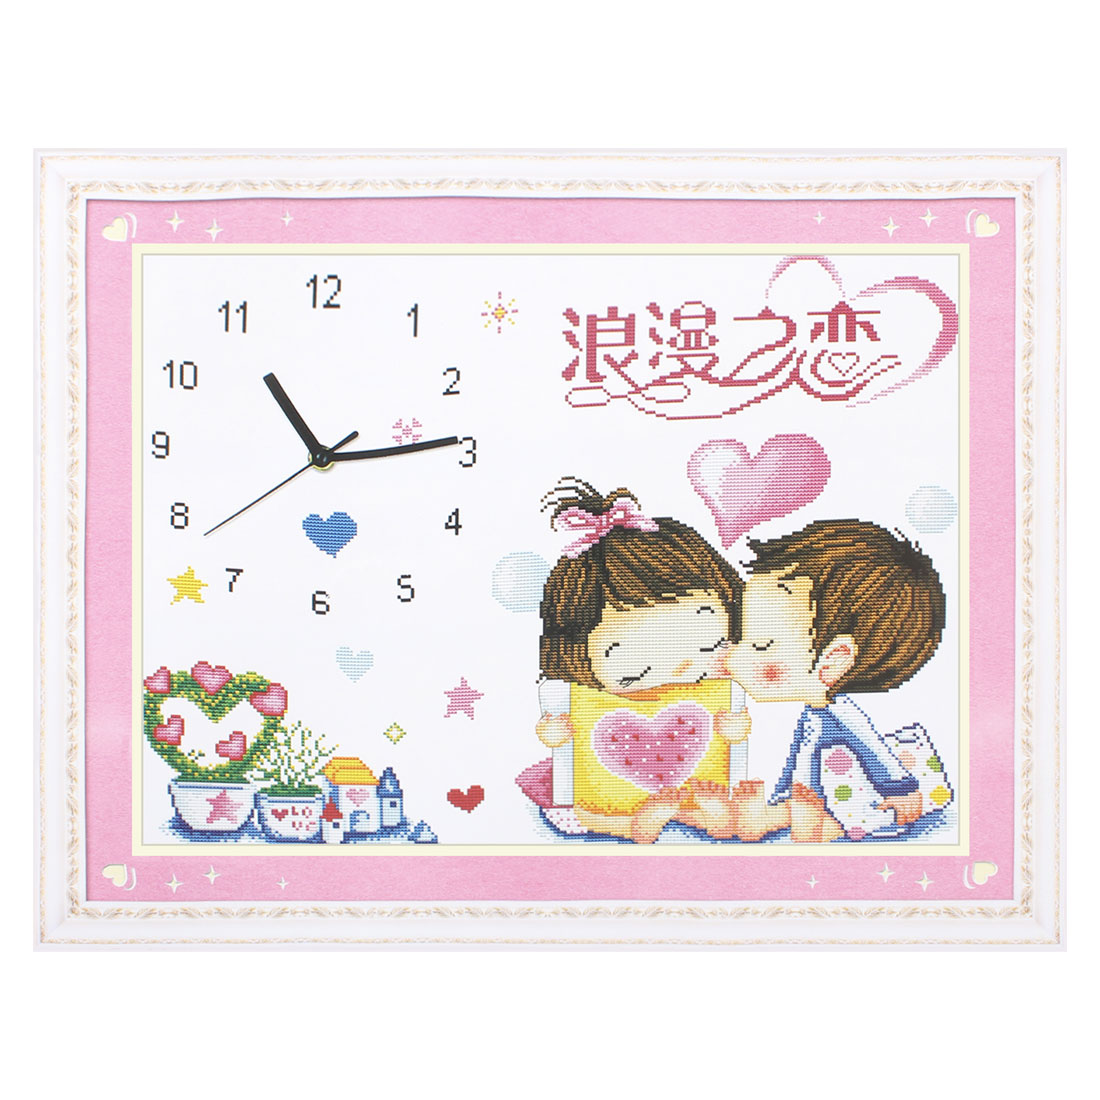 Digital Time Sweetheart Friend Printed Stamped Cross Stitch Counted Kit for Lady